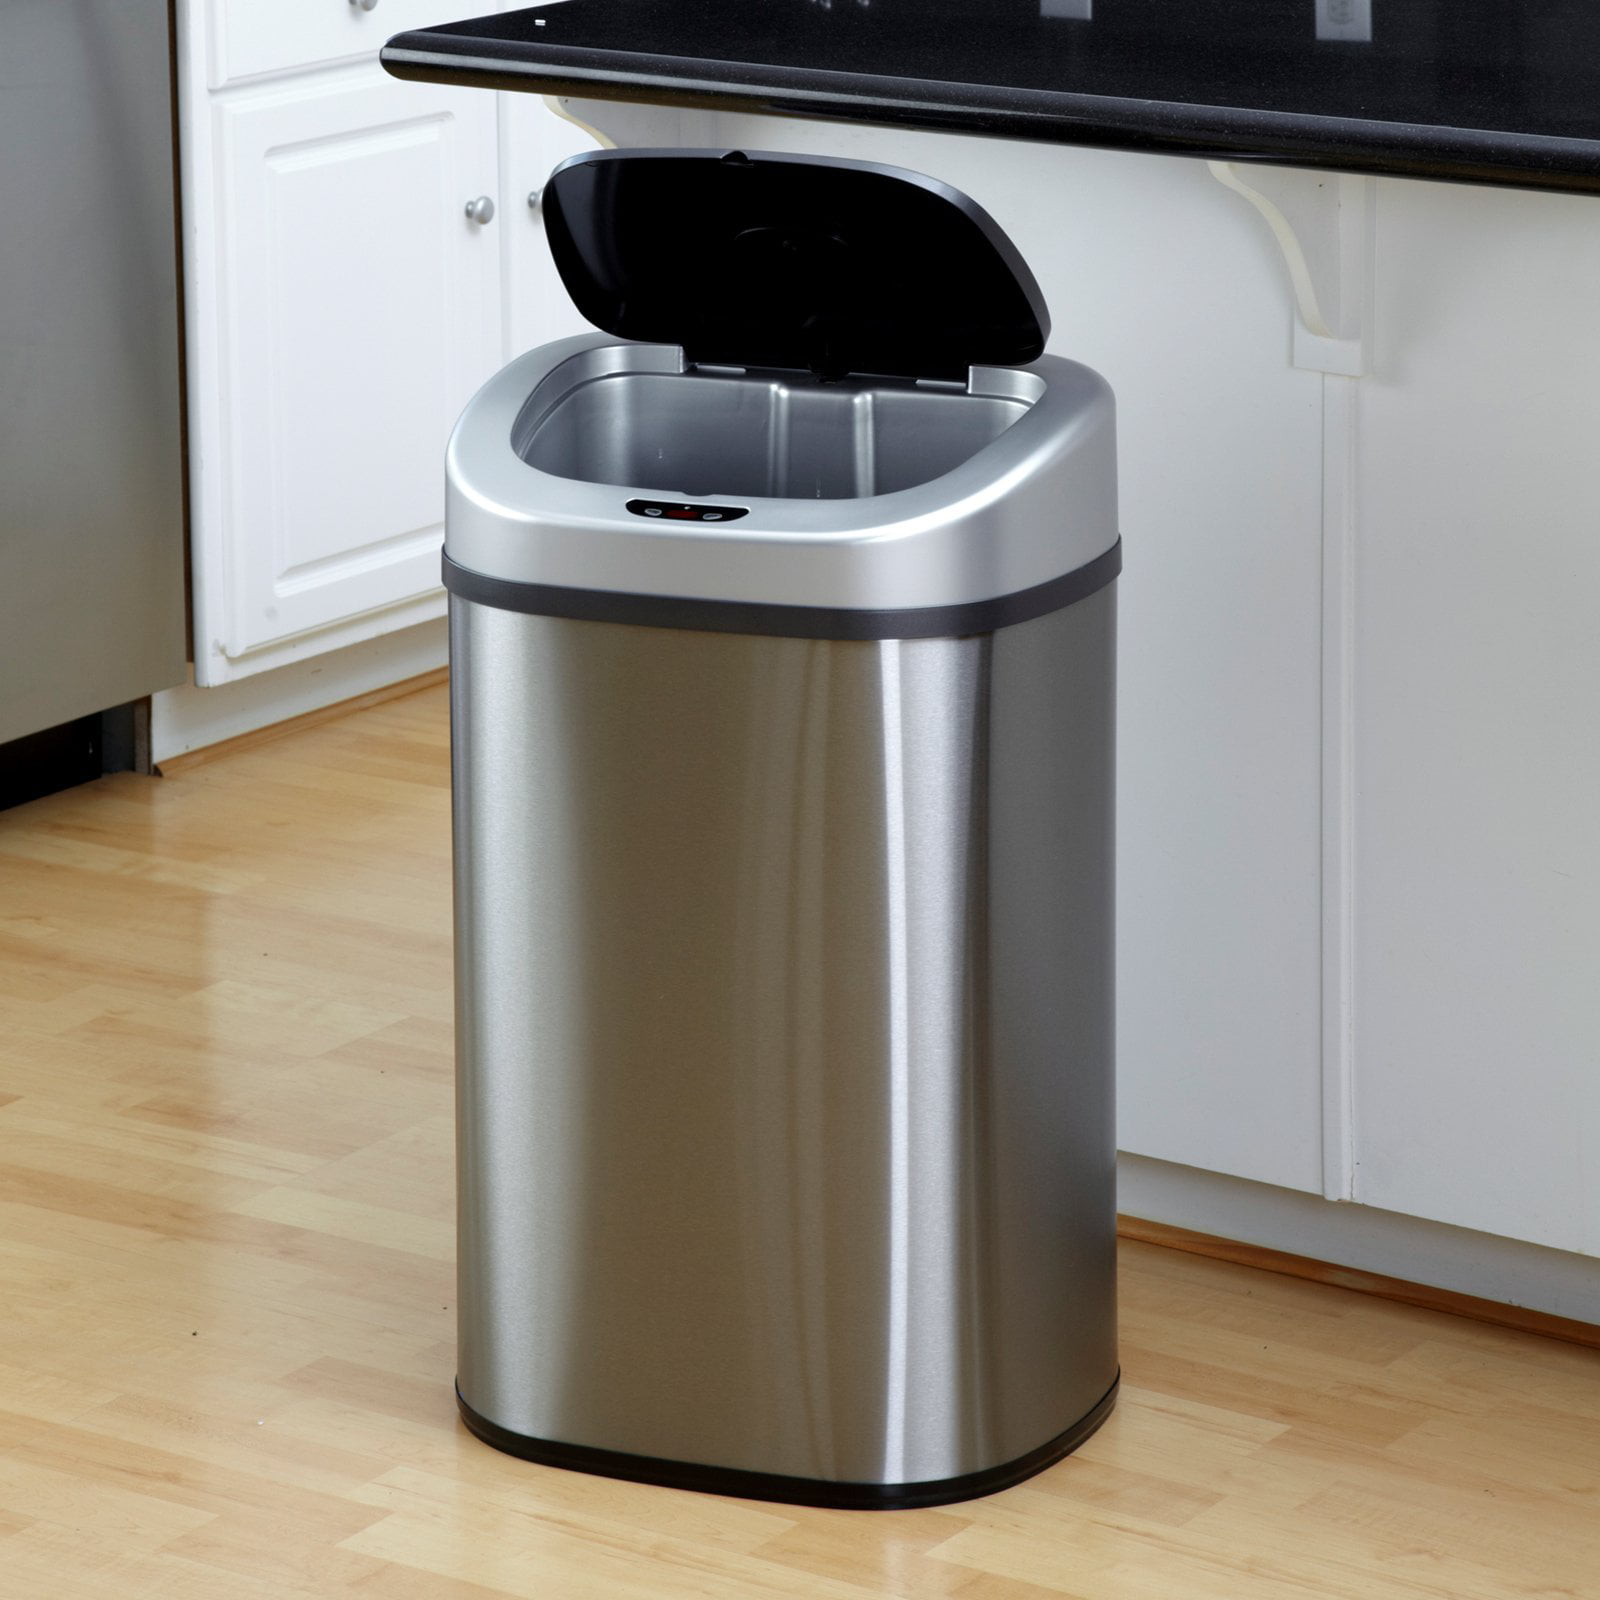 Etonnant Nine Stars DZT 80 4 Touchless Stainless Steel 21.1 Gallon Trash Can    Walmart.com